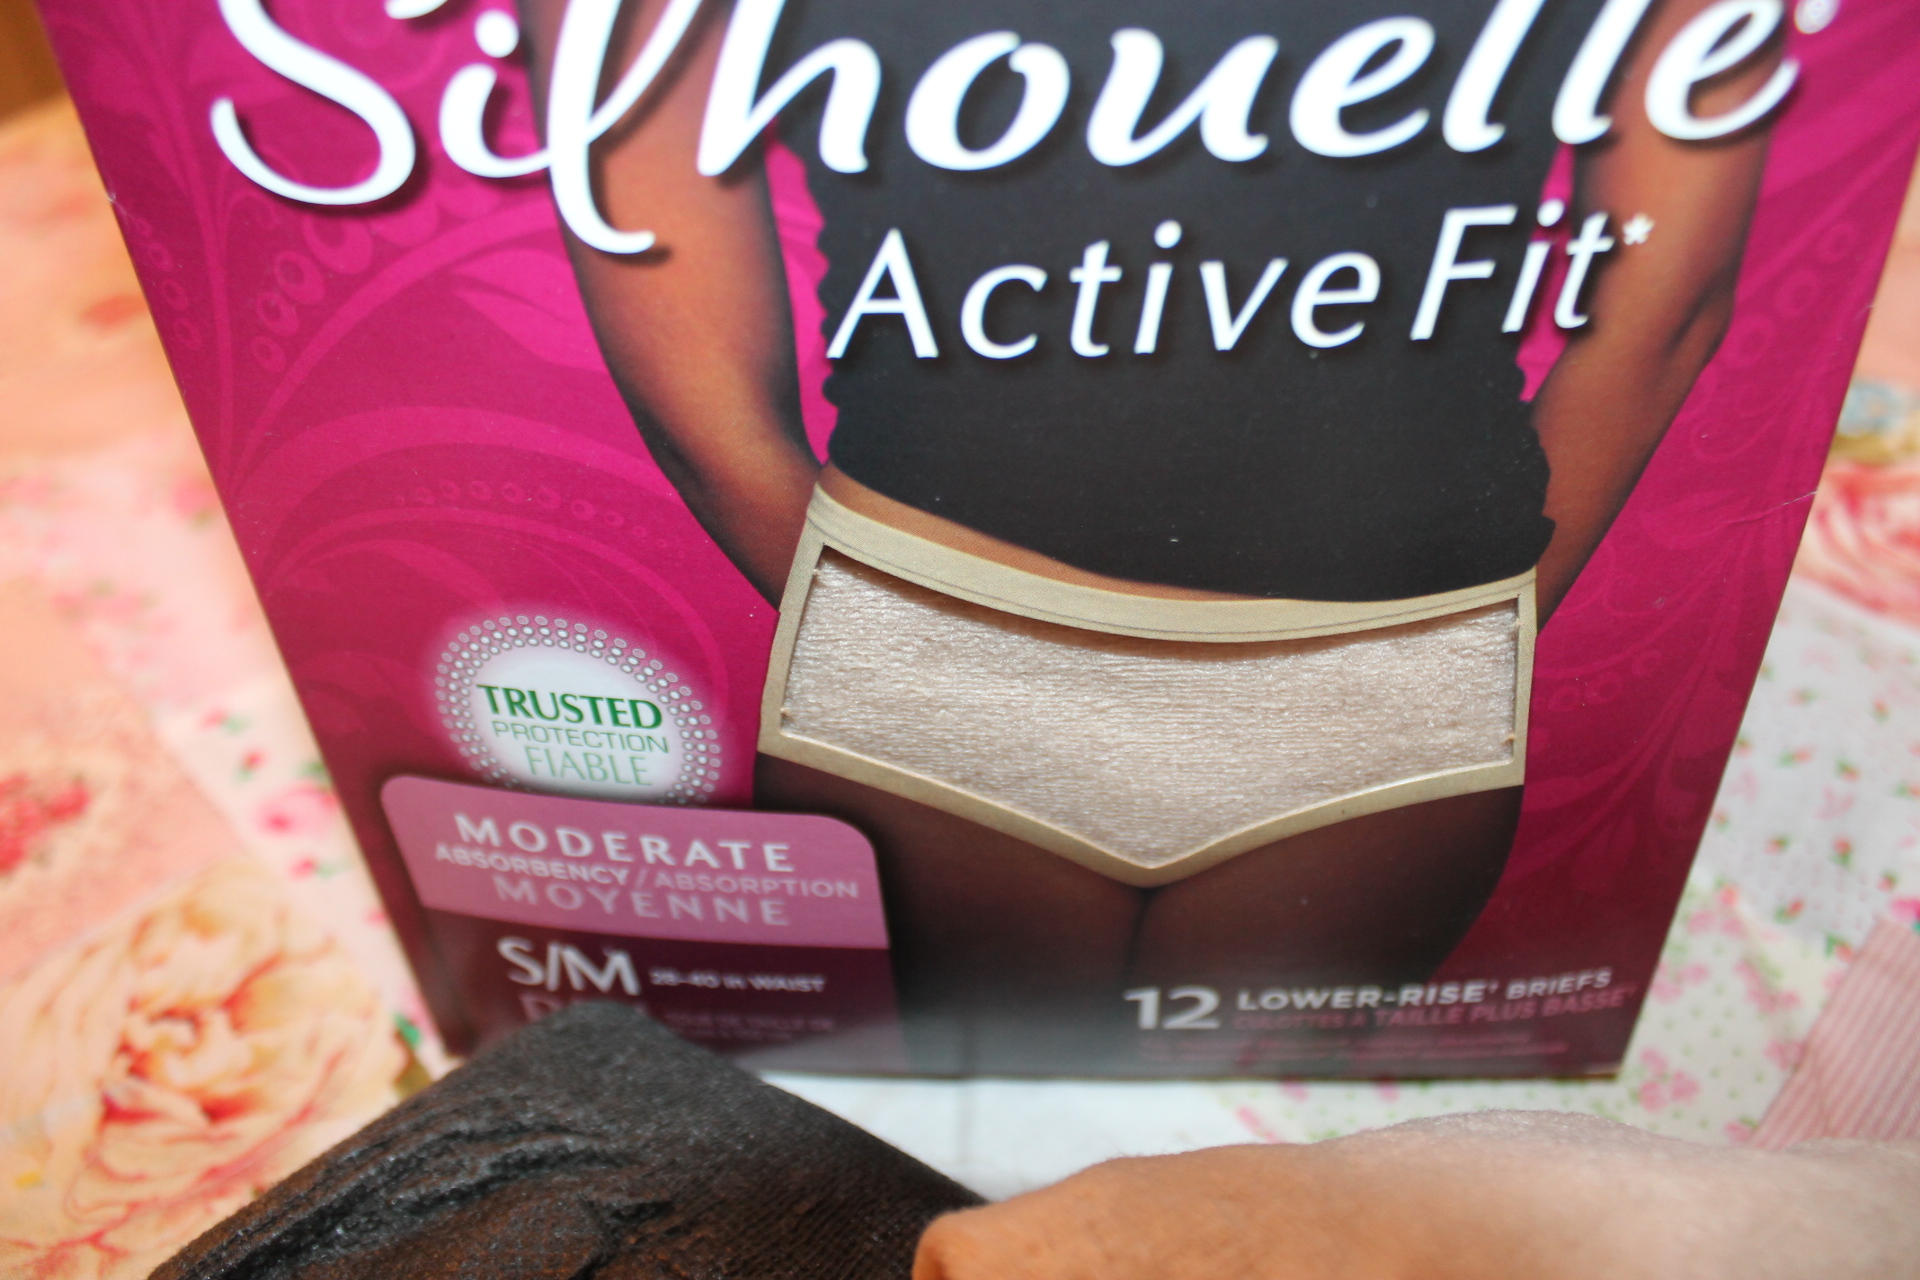 Support Depend Charitable Cause FREE SAMPLE #underwareness #sp